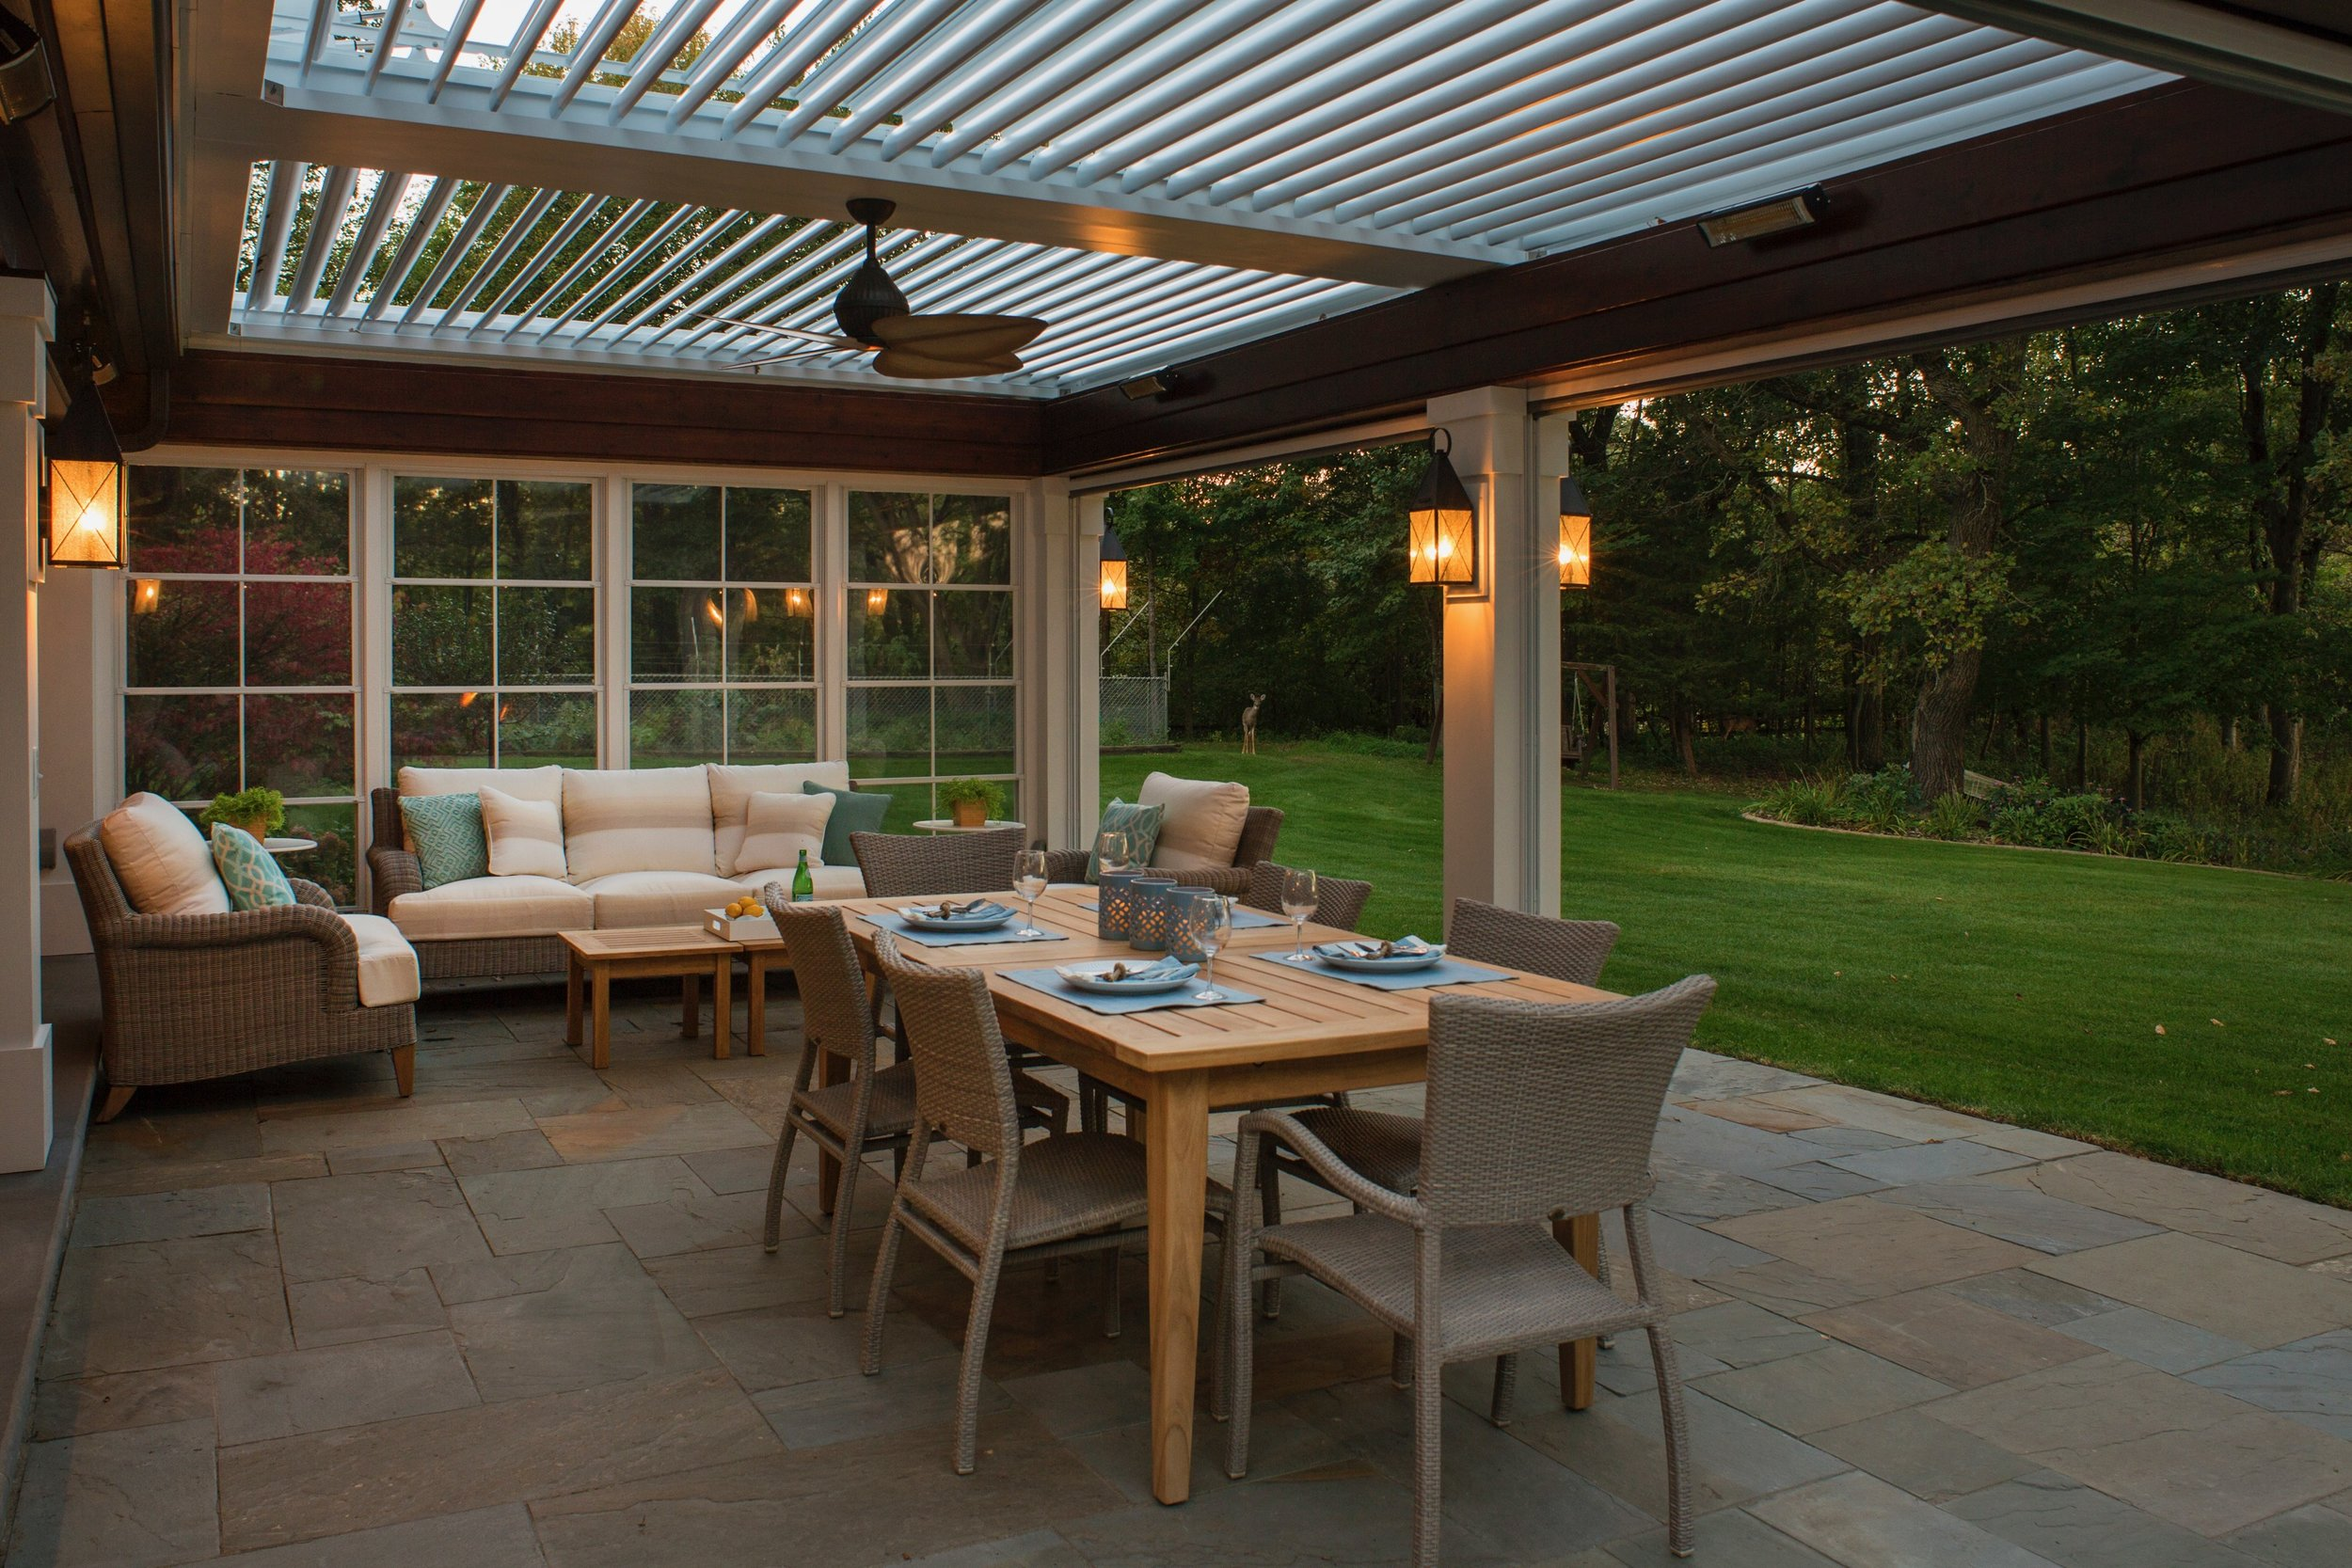 Mom's Design Build - Outdoor Dining Section With automated louvered roof